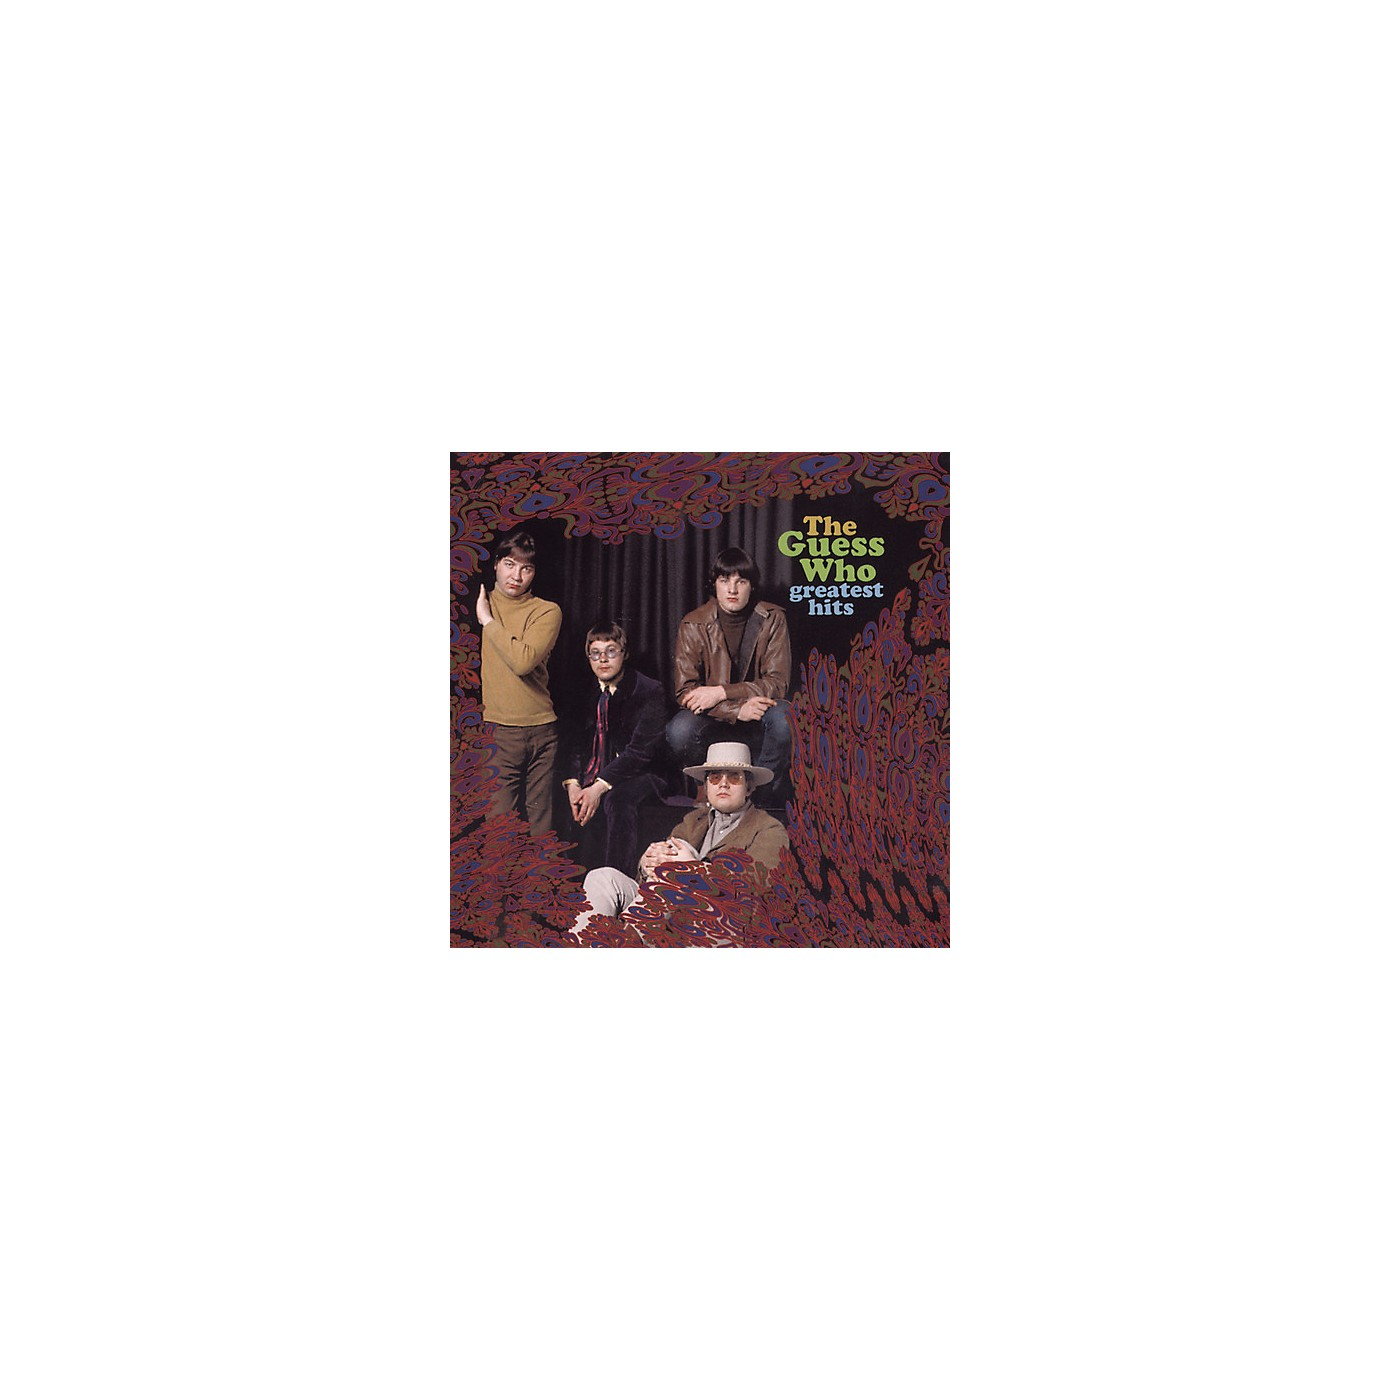 Alliance The Guess Who - Greatest Hits (CD) thumbnail